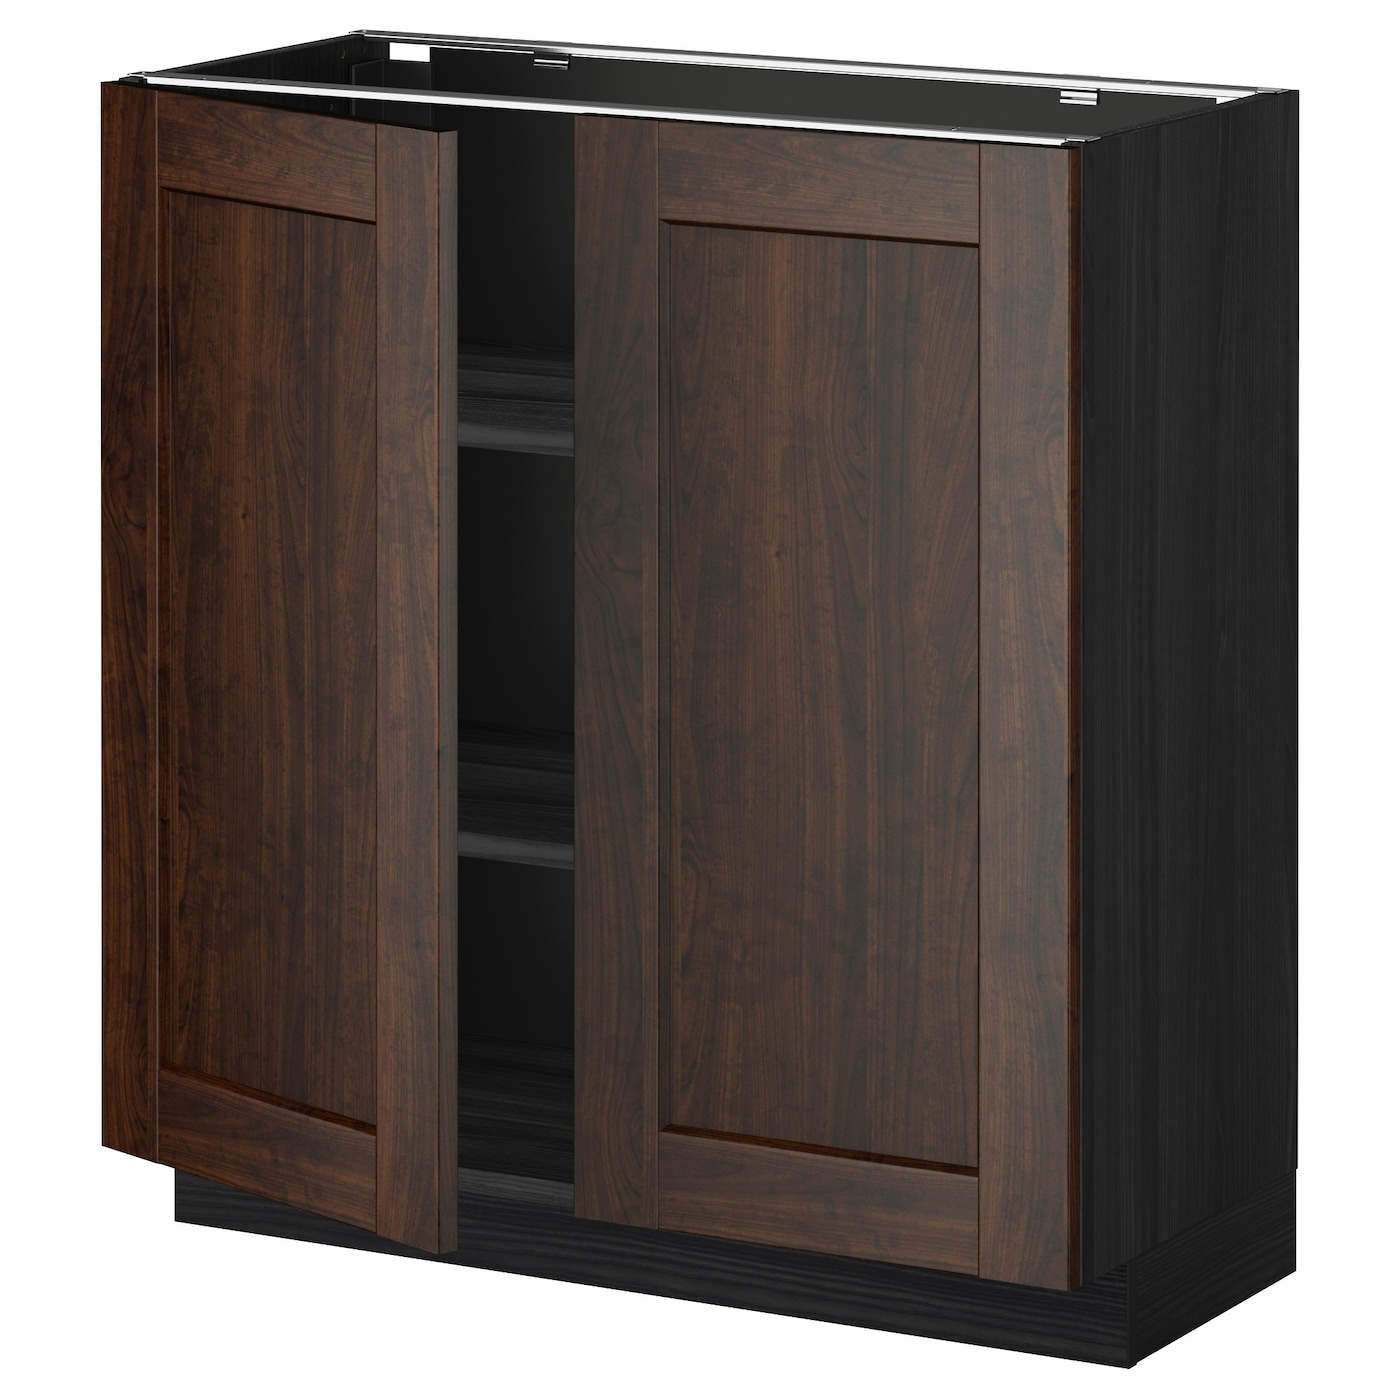 Metod base cabinet with shelves 2 doors black edserum for Black cabinet with doors